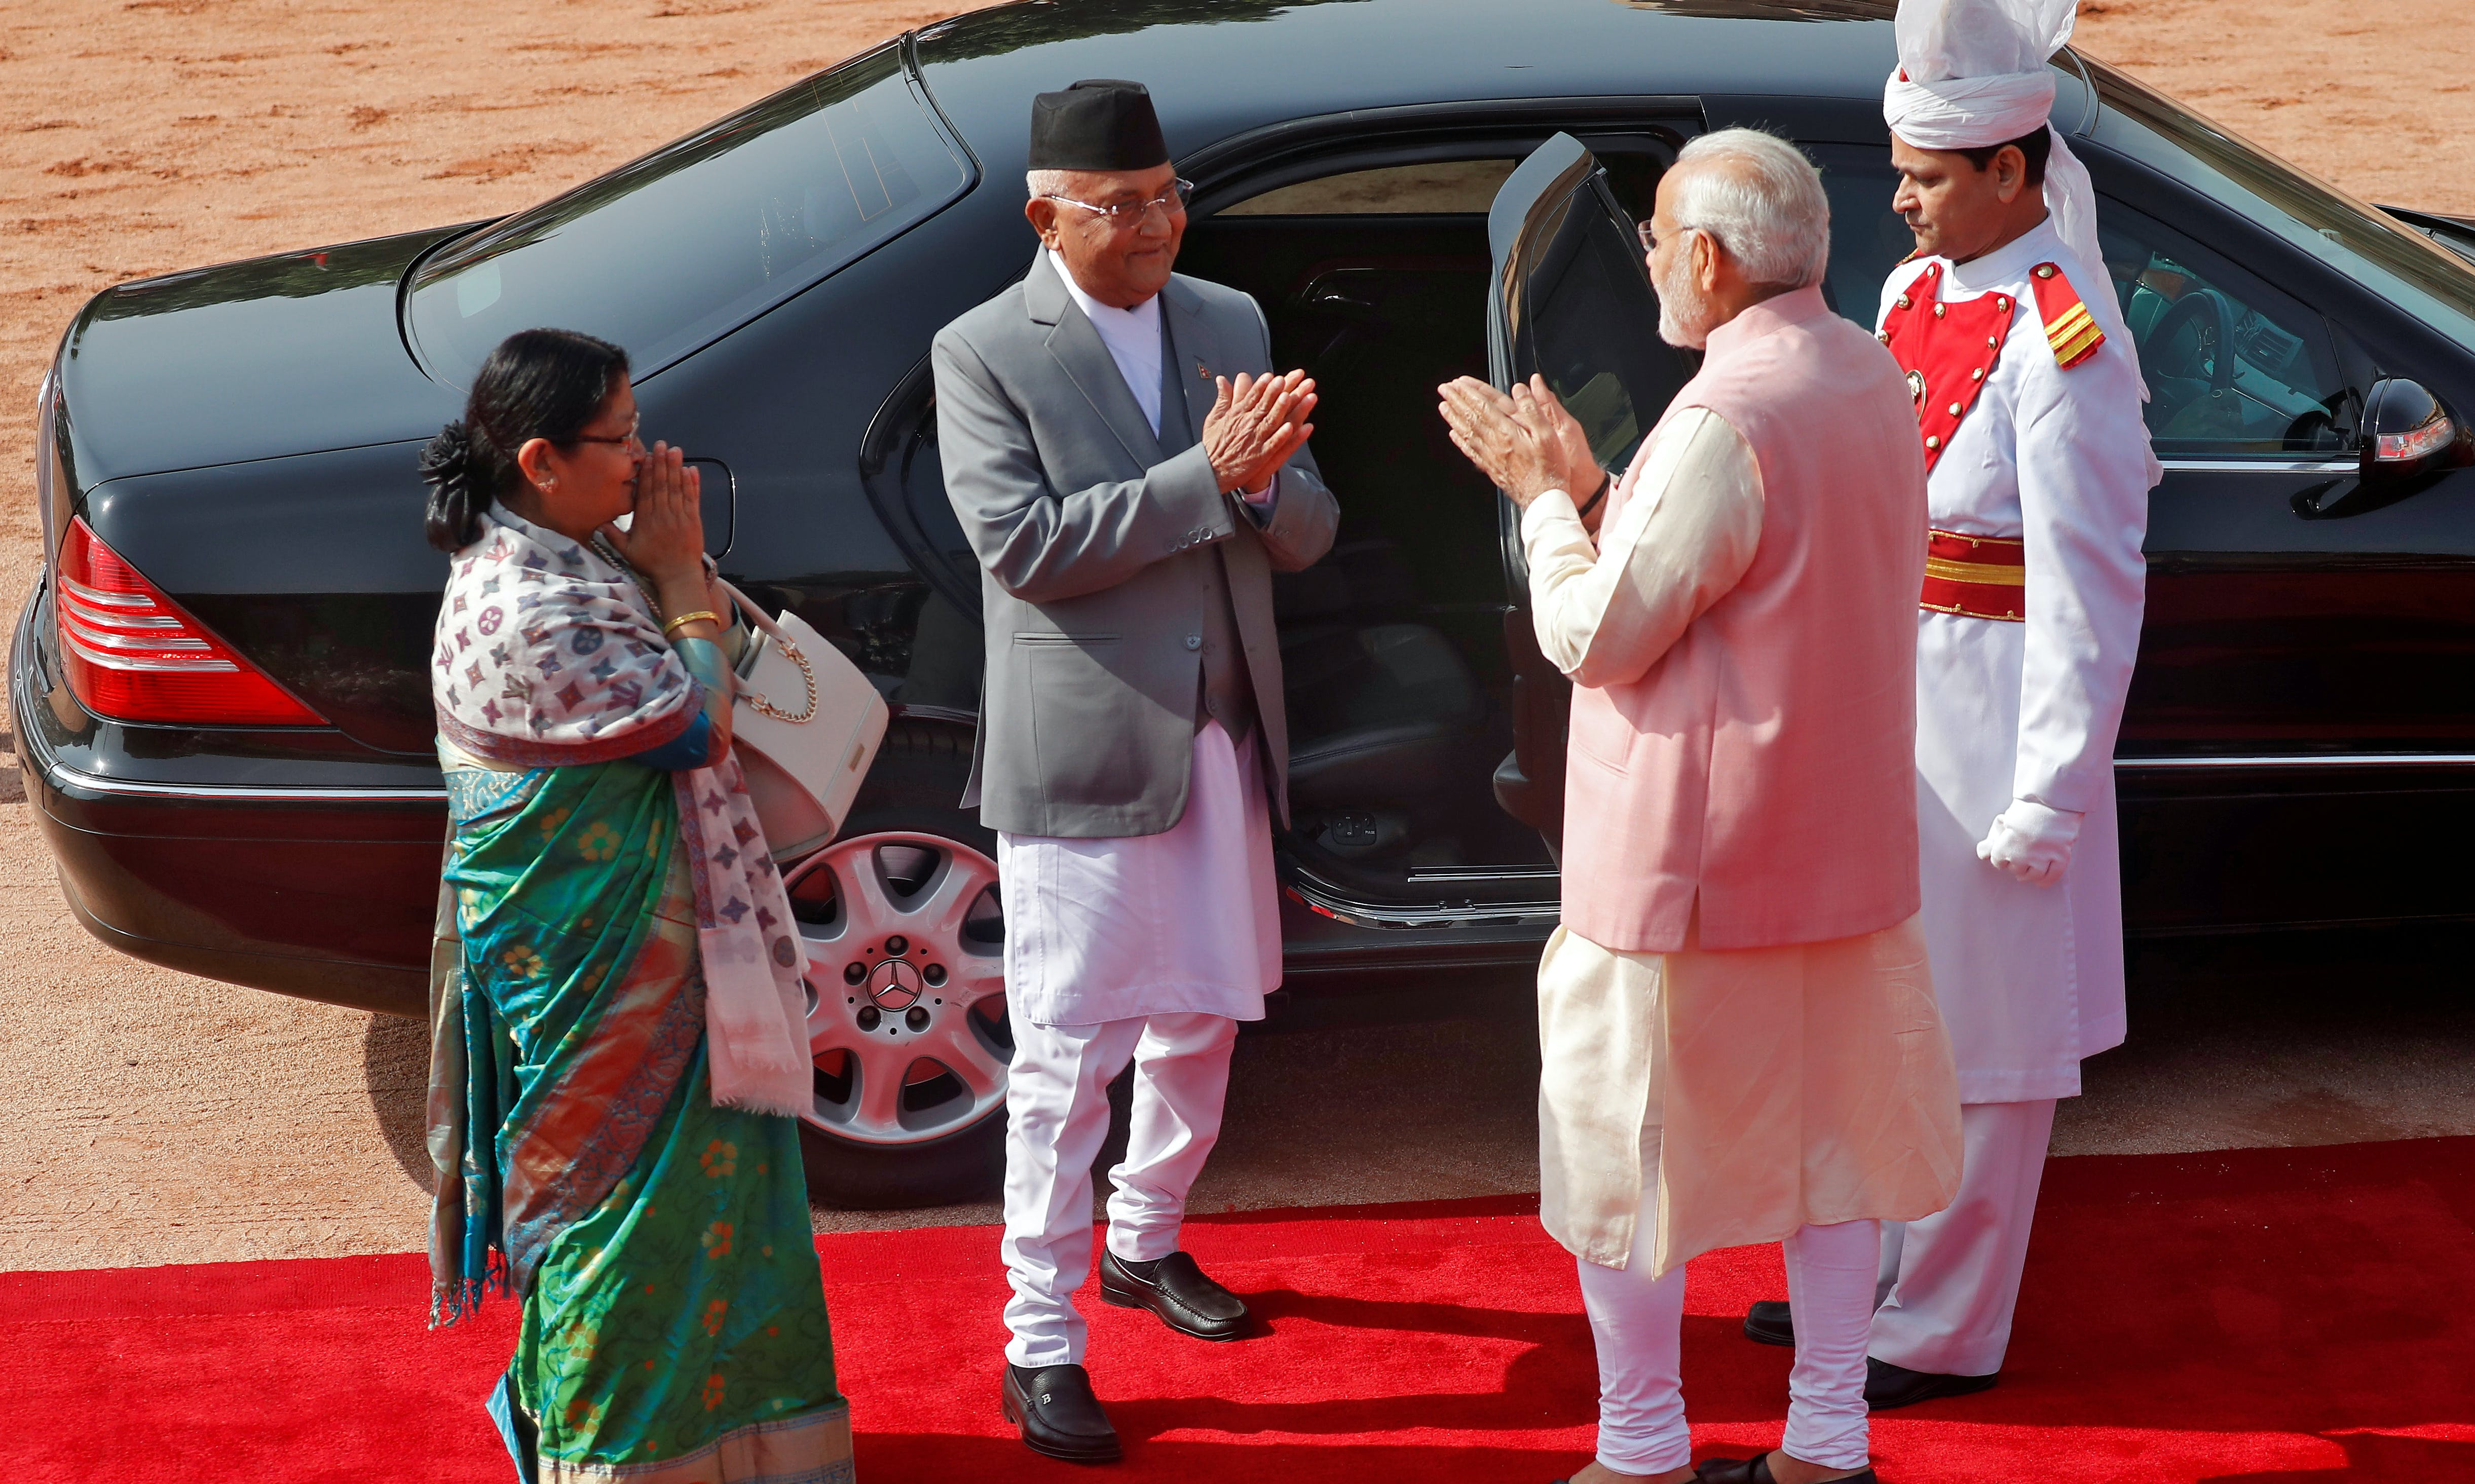 OPINION: Nepal Prime Minister's Visit Leaves Modi and India Cold